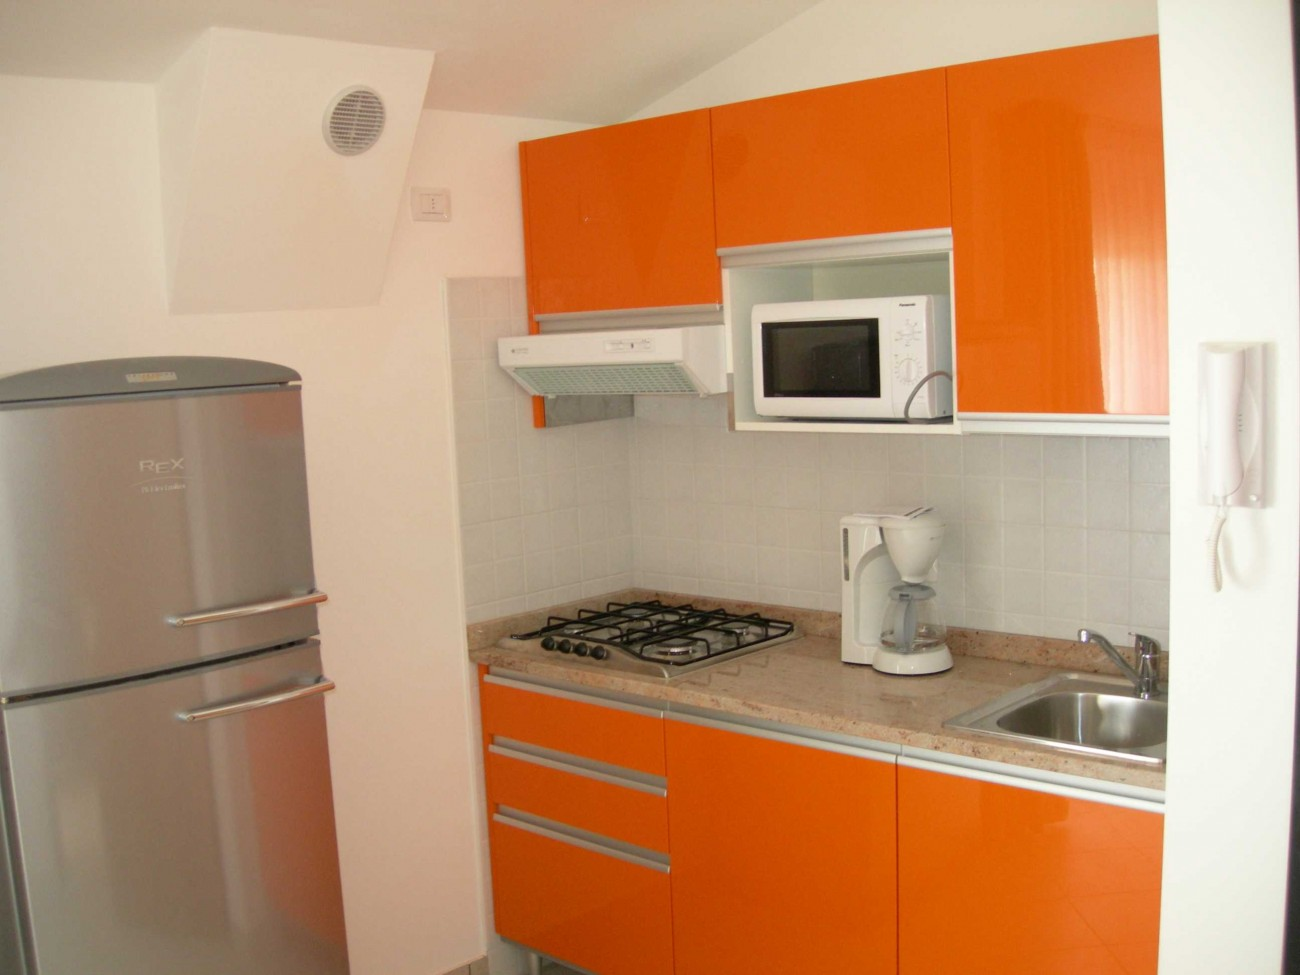 HORIZON B4/L for 4 guests in Bibione, Italy